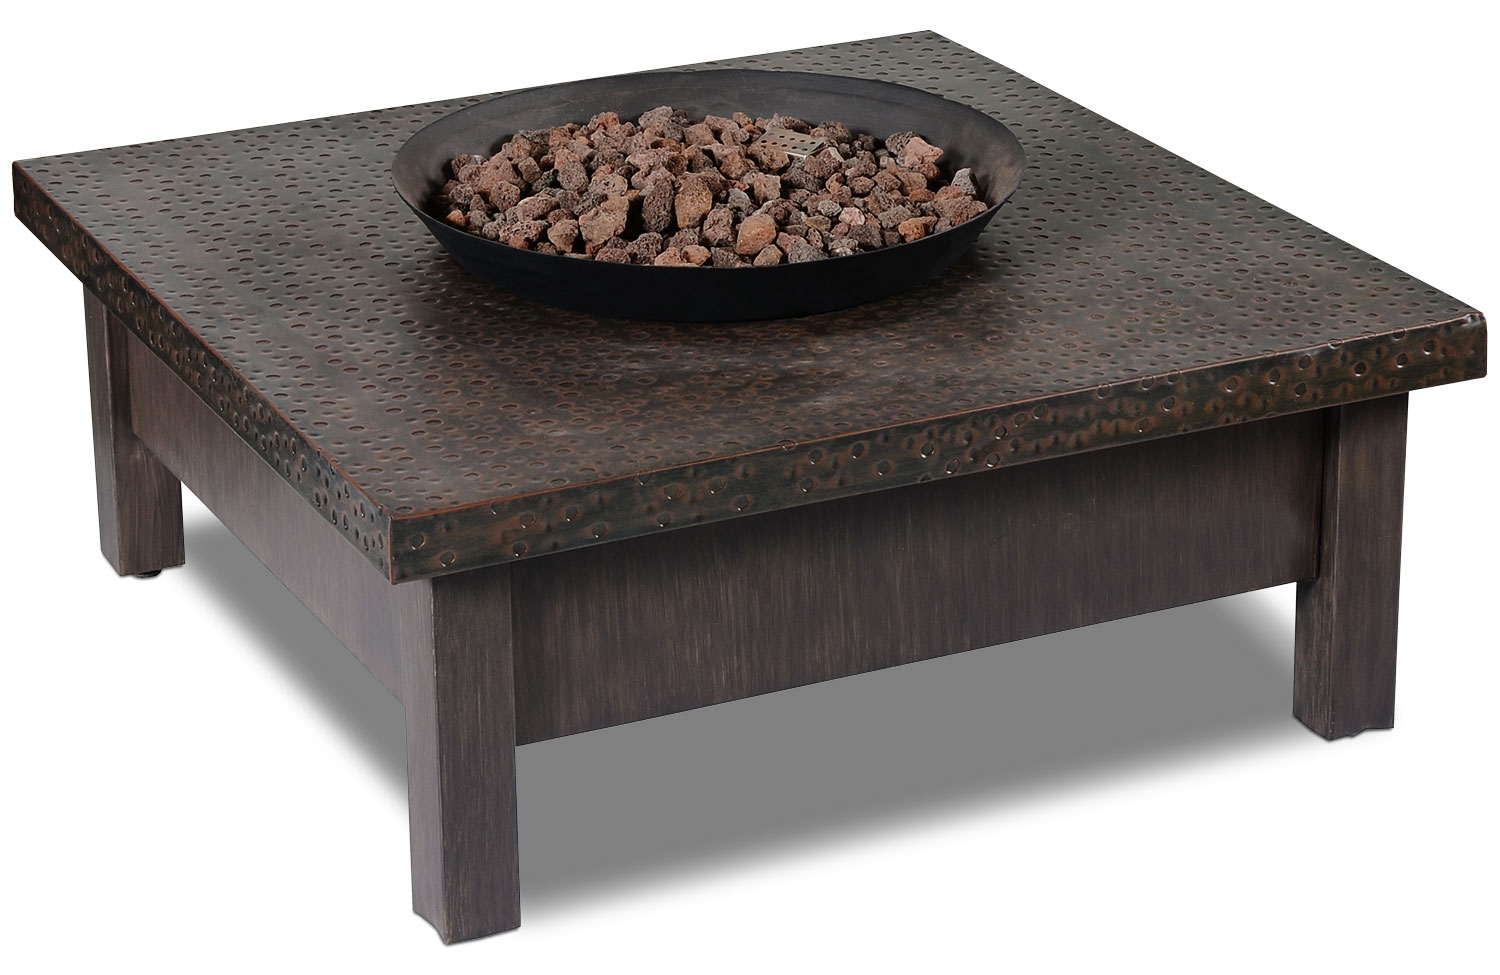 Larkspur 50,000-BTU Fire Table